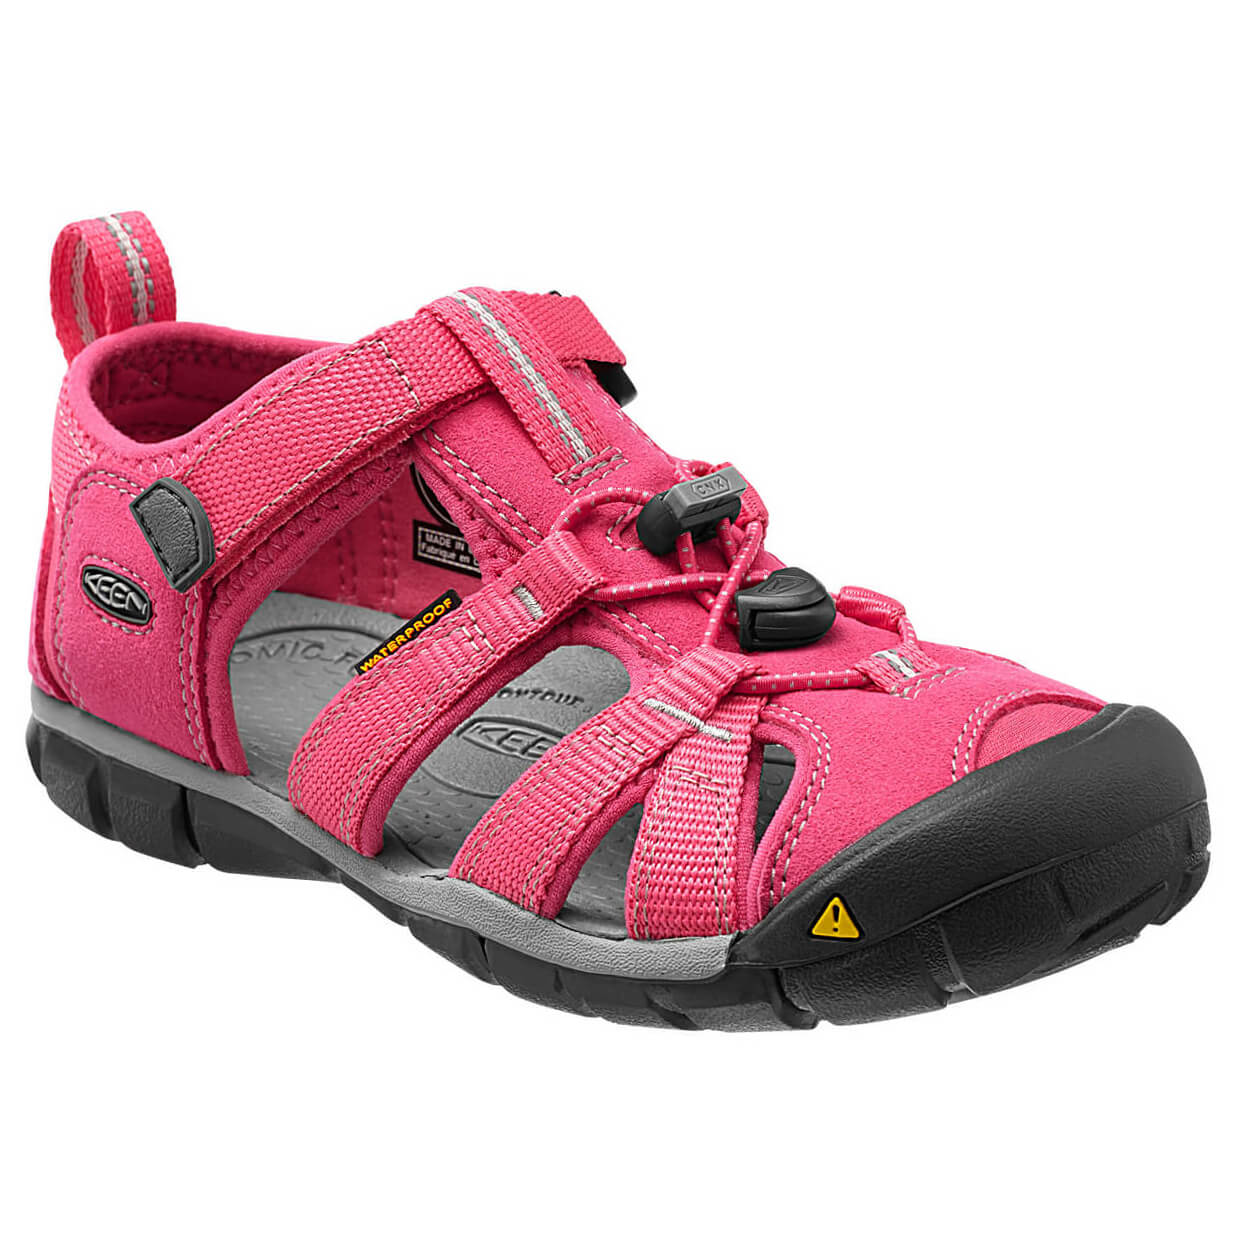 Shop for and buy keen sandals online at Macy's. Find keen sandals at Macy's.